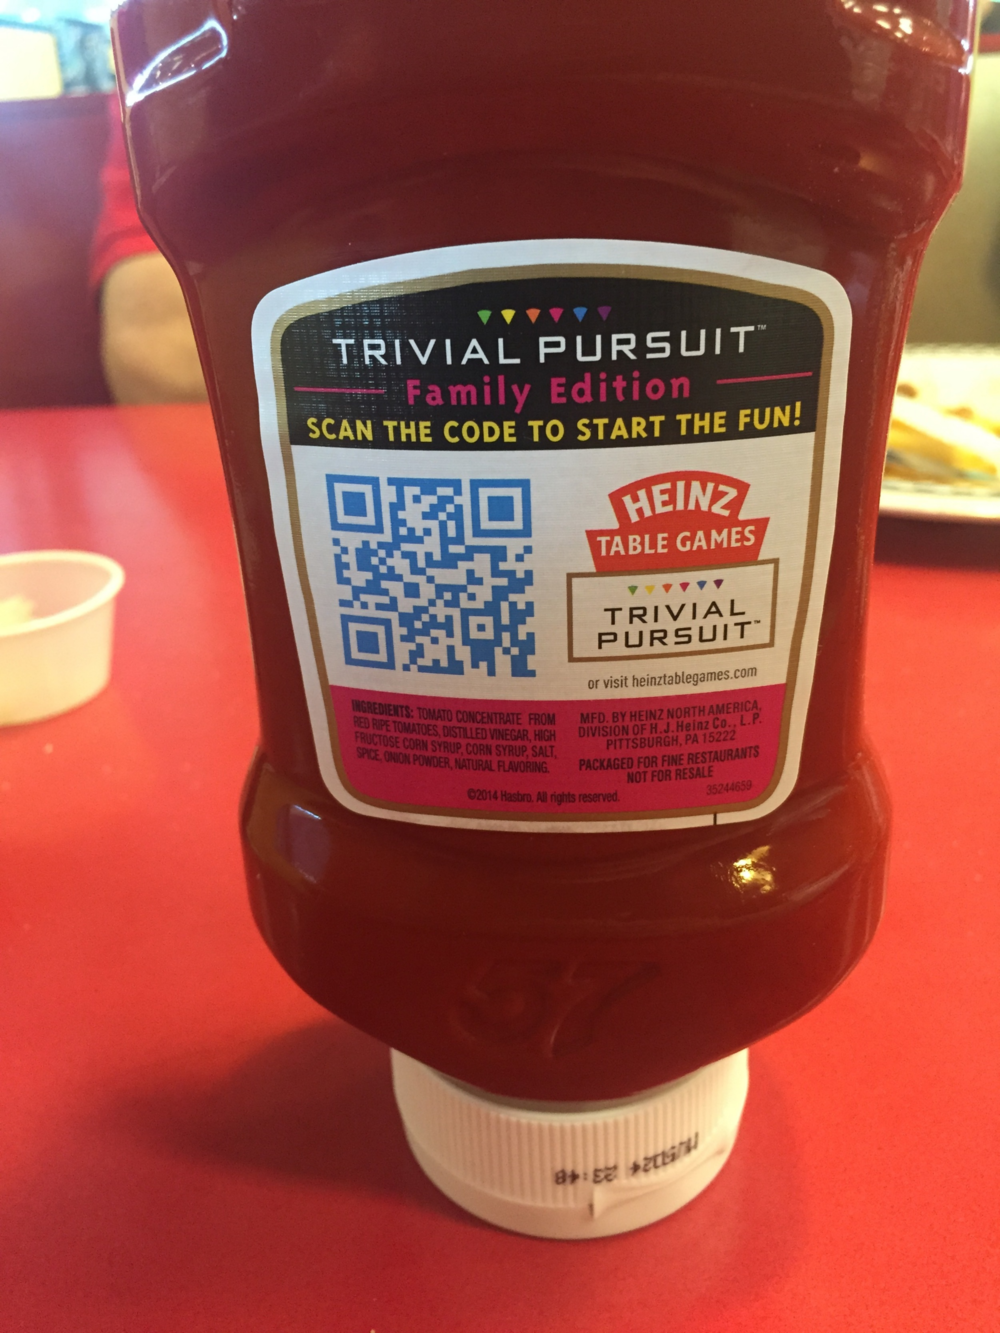 Heinz Ketchup with QR Code for Trivial Pursuit Family Edition